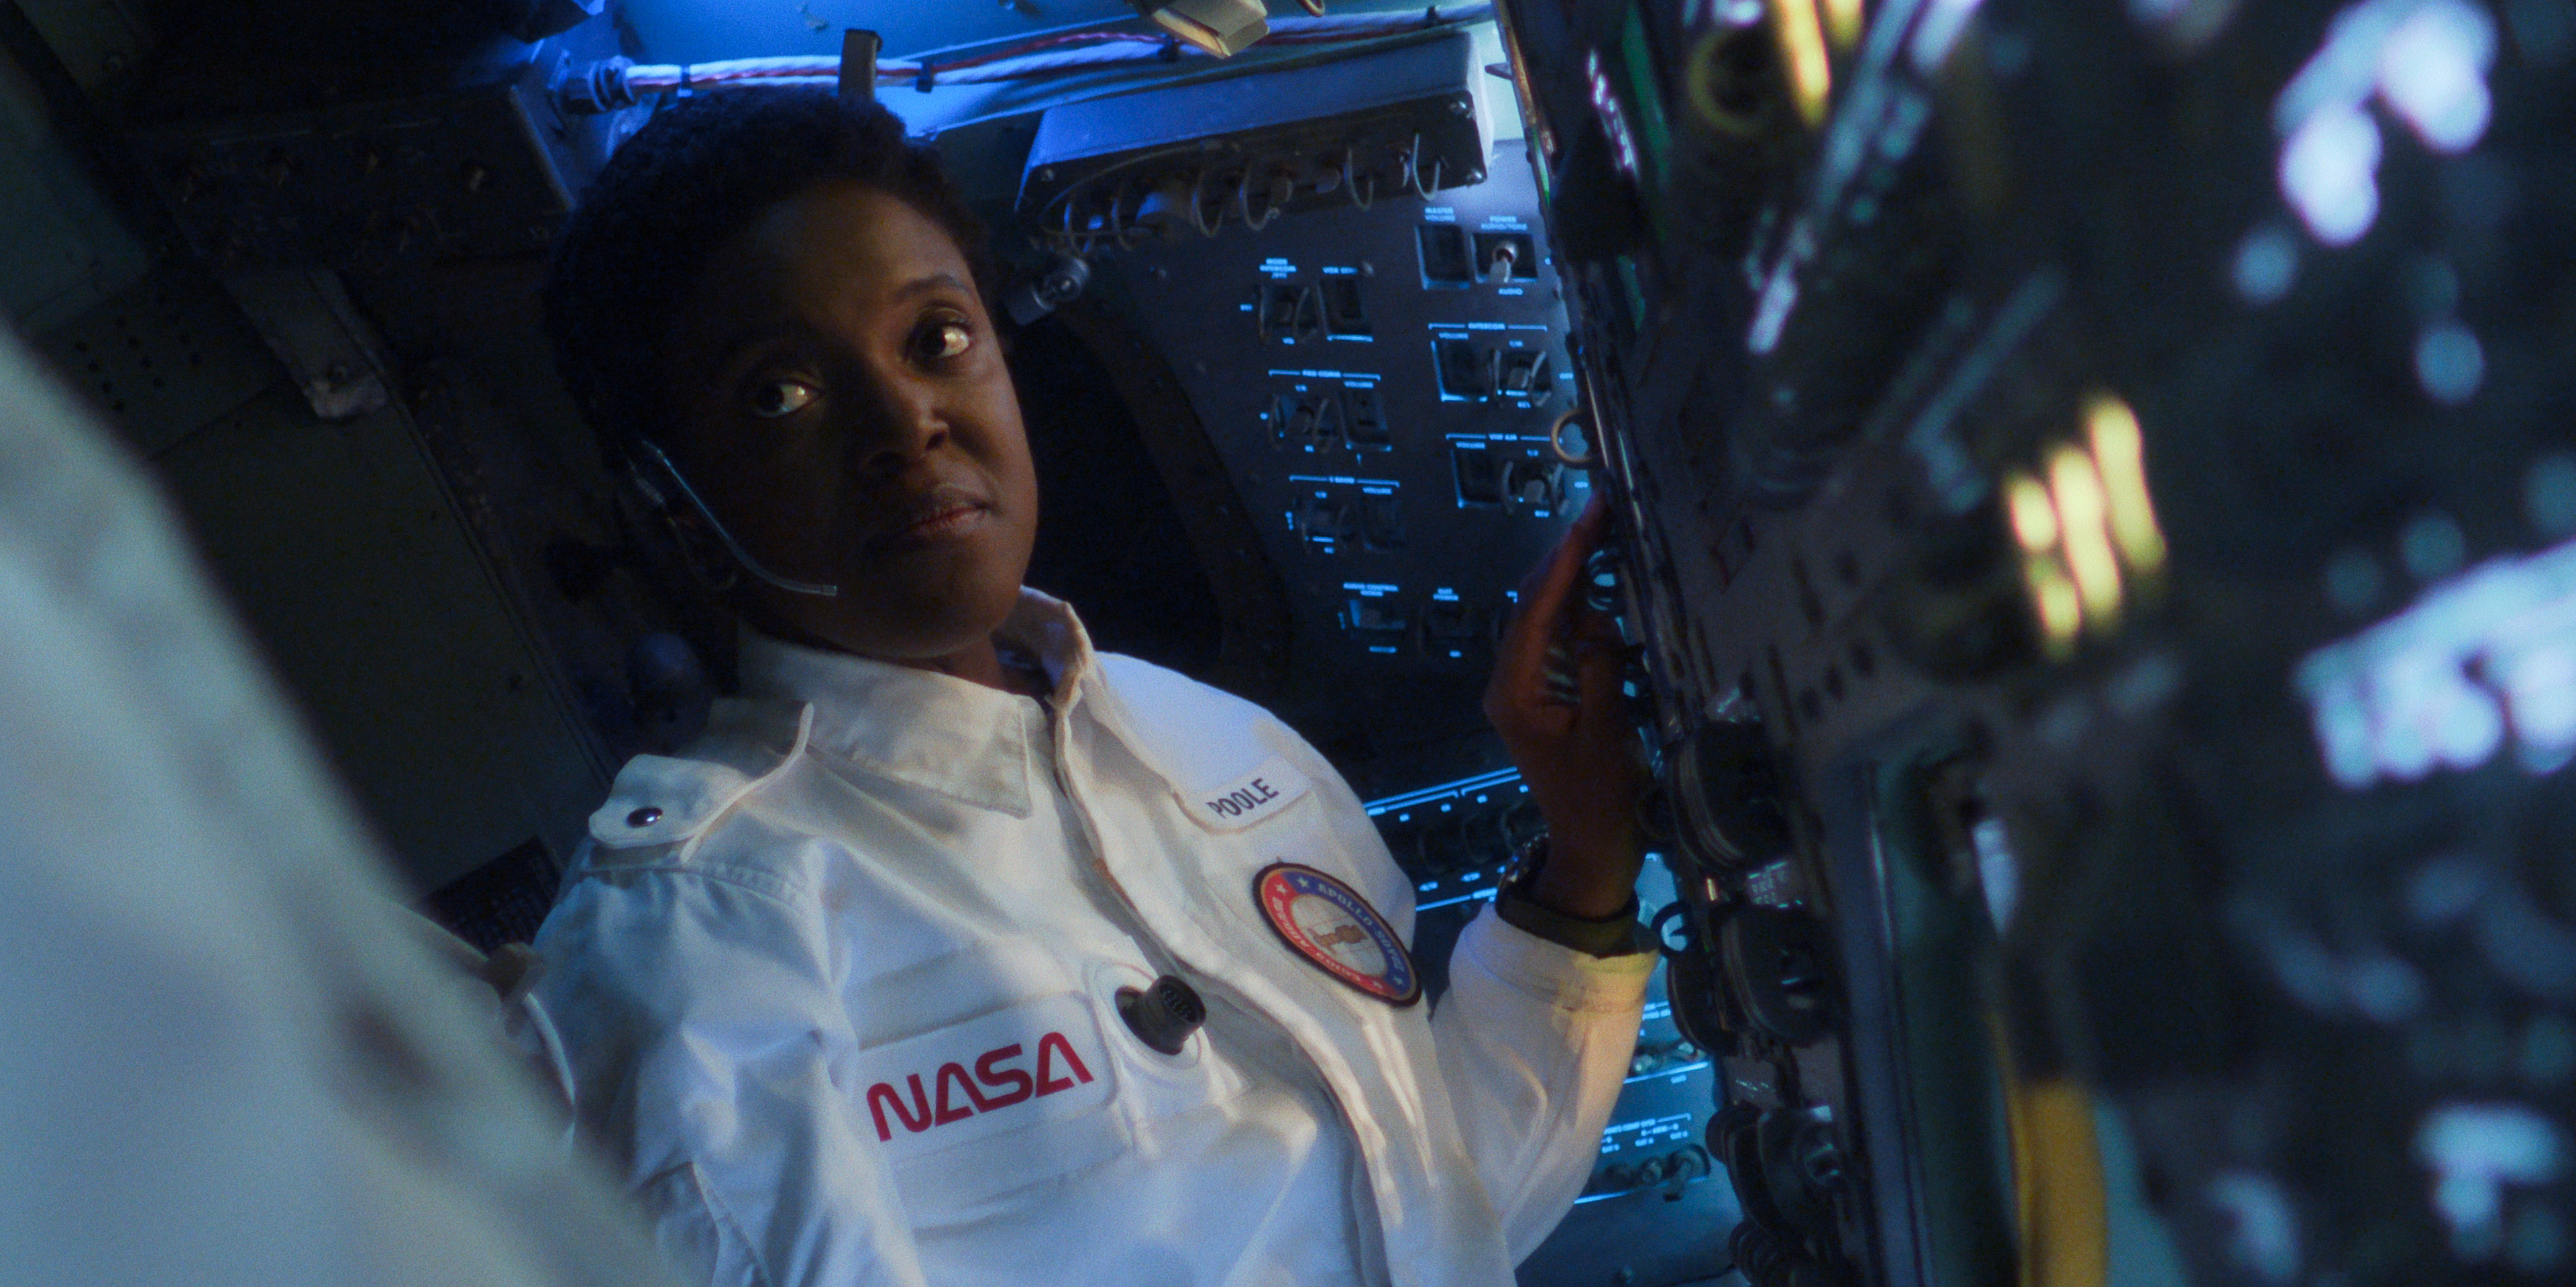 Danielle Poole, played by Krys Marshall, captains a space shuttle.